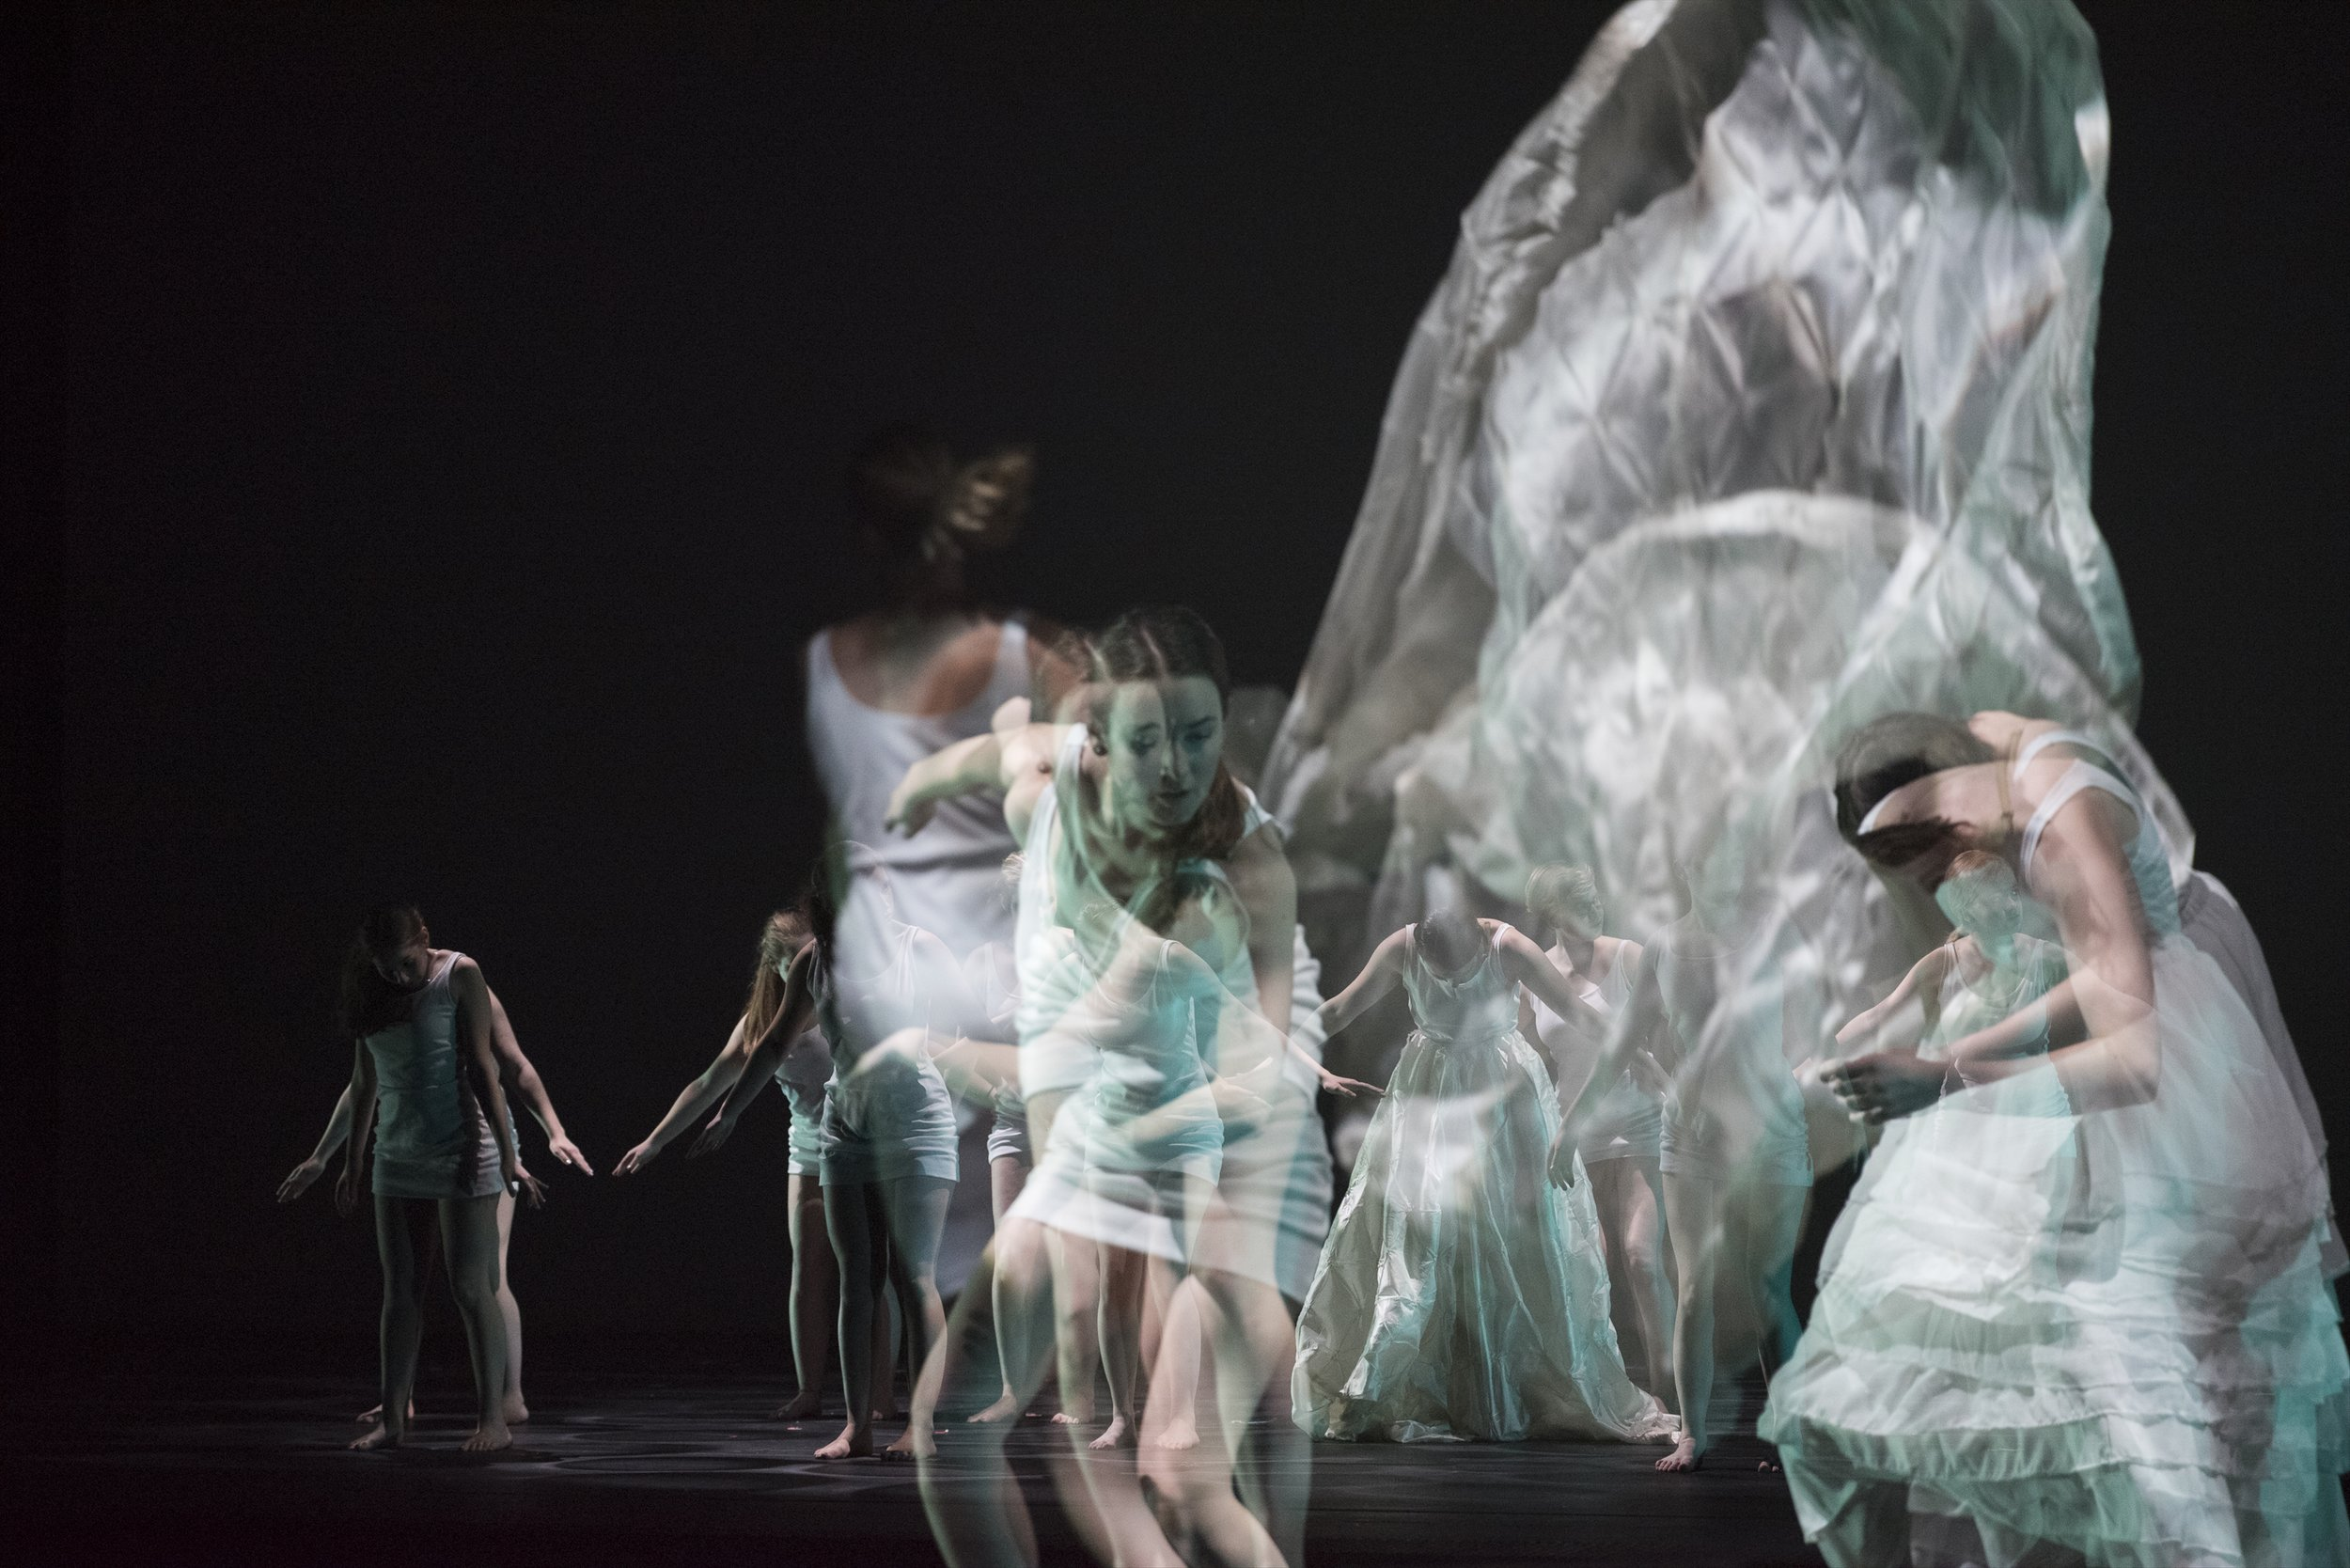 University of Wisconsin-Milwaukee Residency - Technique Workshop on March 29, 2019Performance on March 30, 2019 at 7:30 PM | University of Wisconsin-Milwaukee